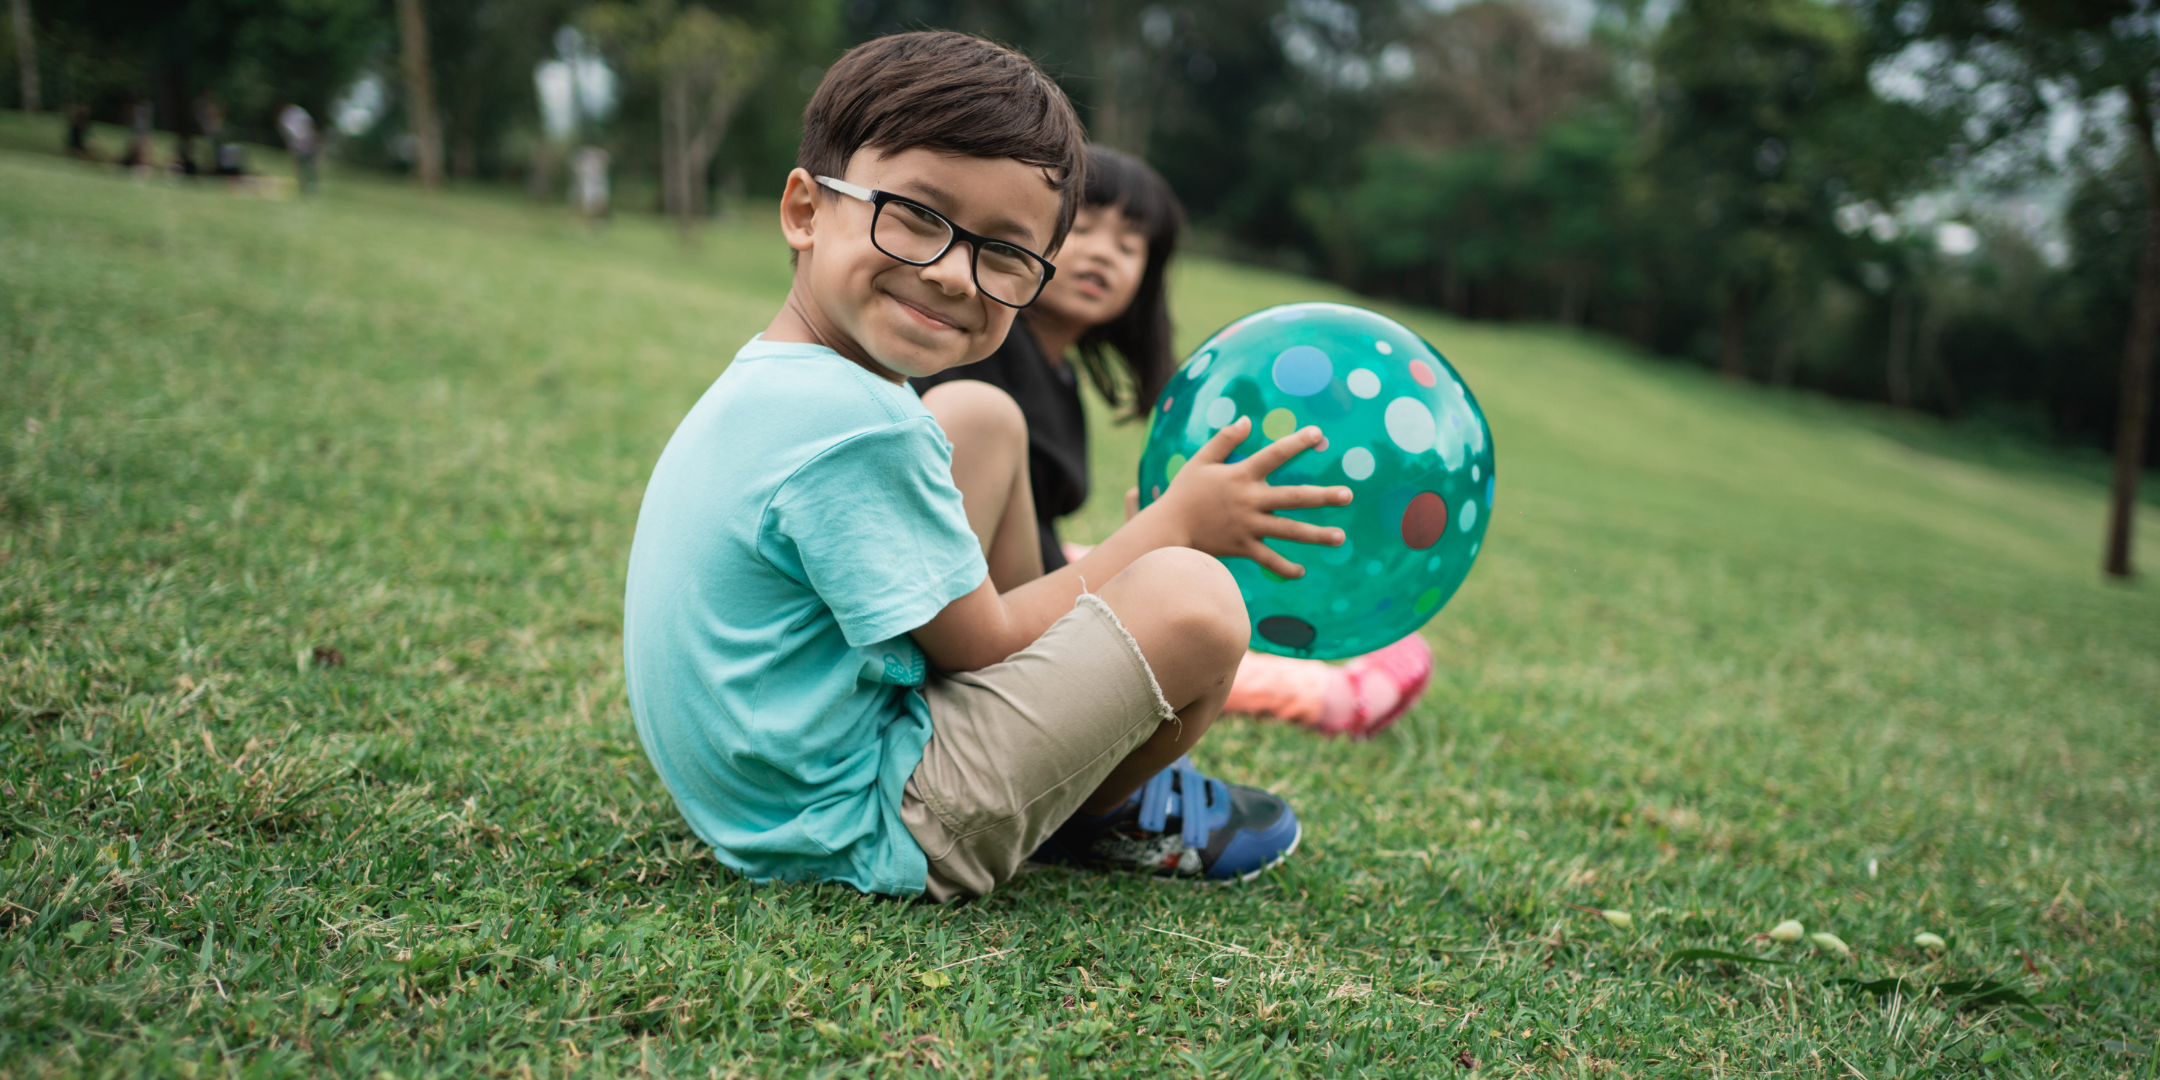 Photo of a little boy wearing glasses, holding a green ball whilst sitting on the grass and smiling at the camera. His little sister sits behind him.